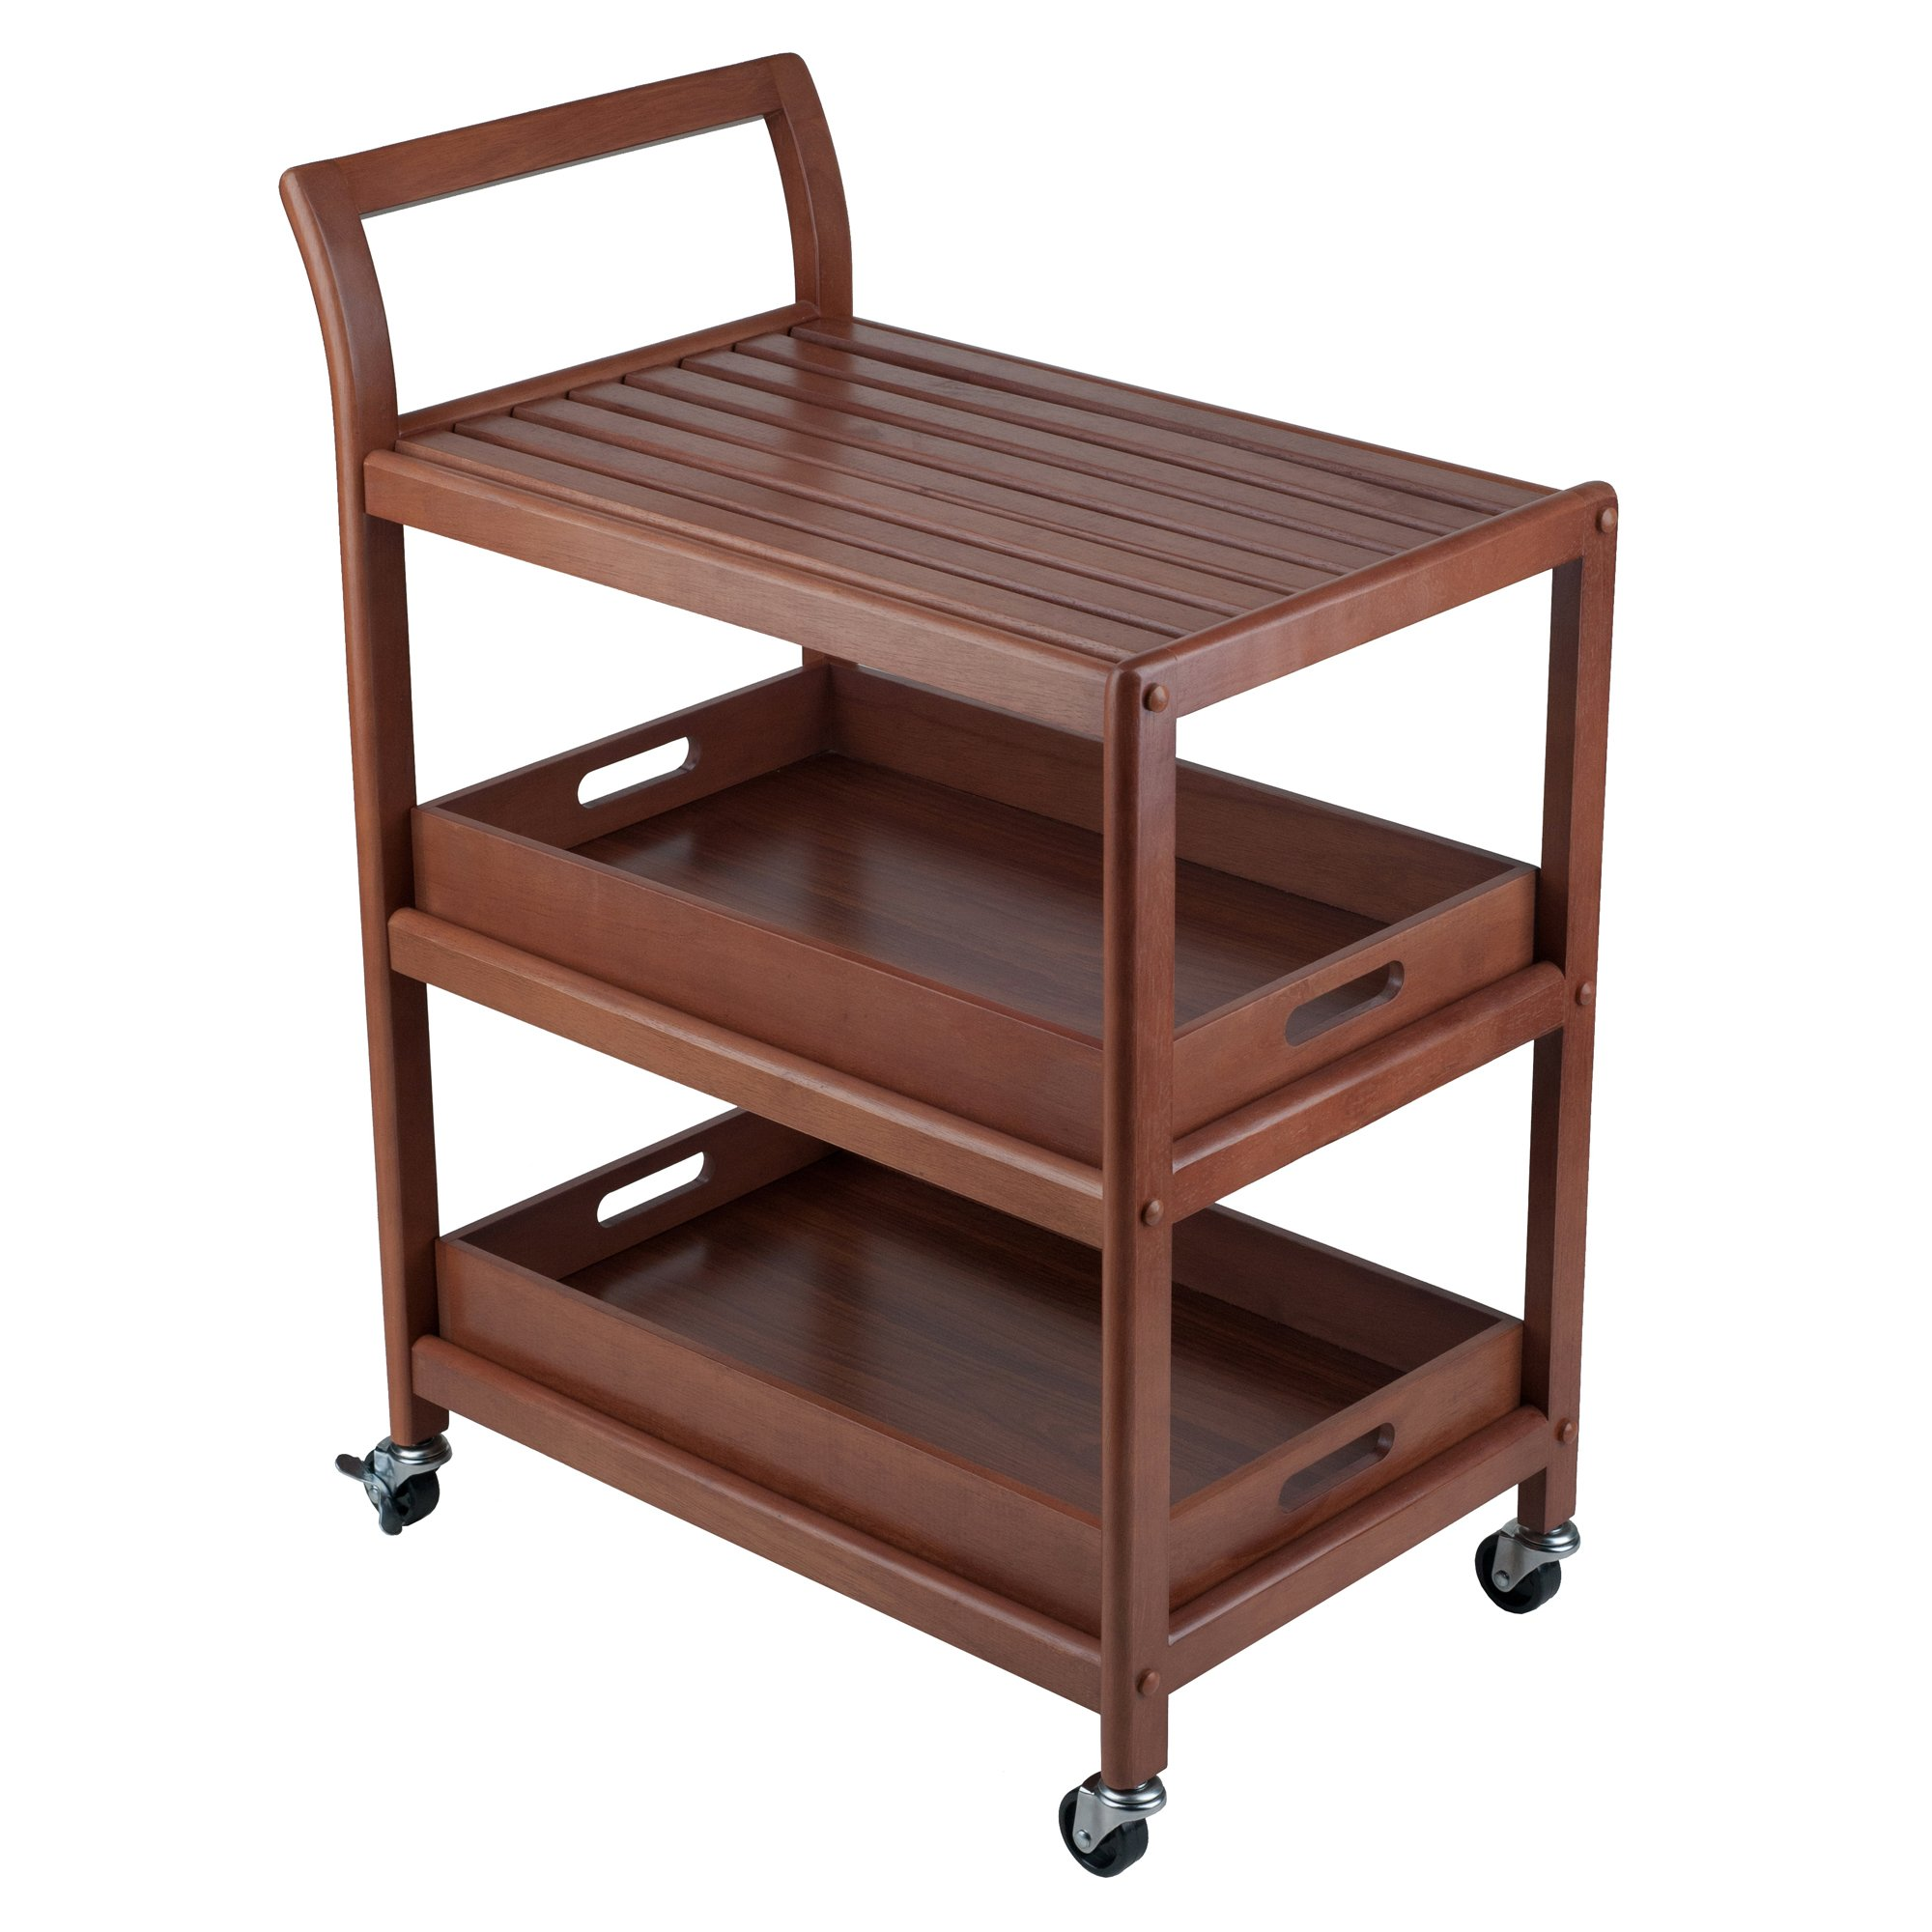 Winsome Wood 94138 Albert Entertainment Kitchen Cart, Walnut by Winsome Wood